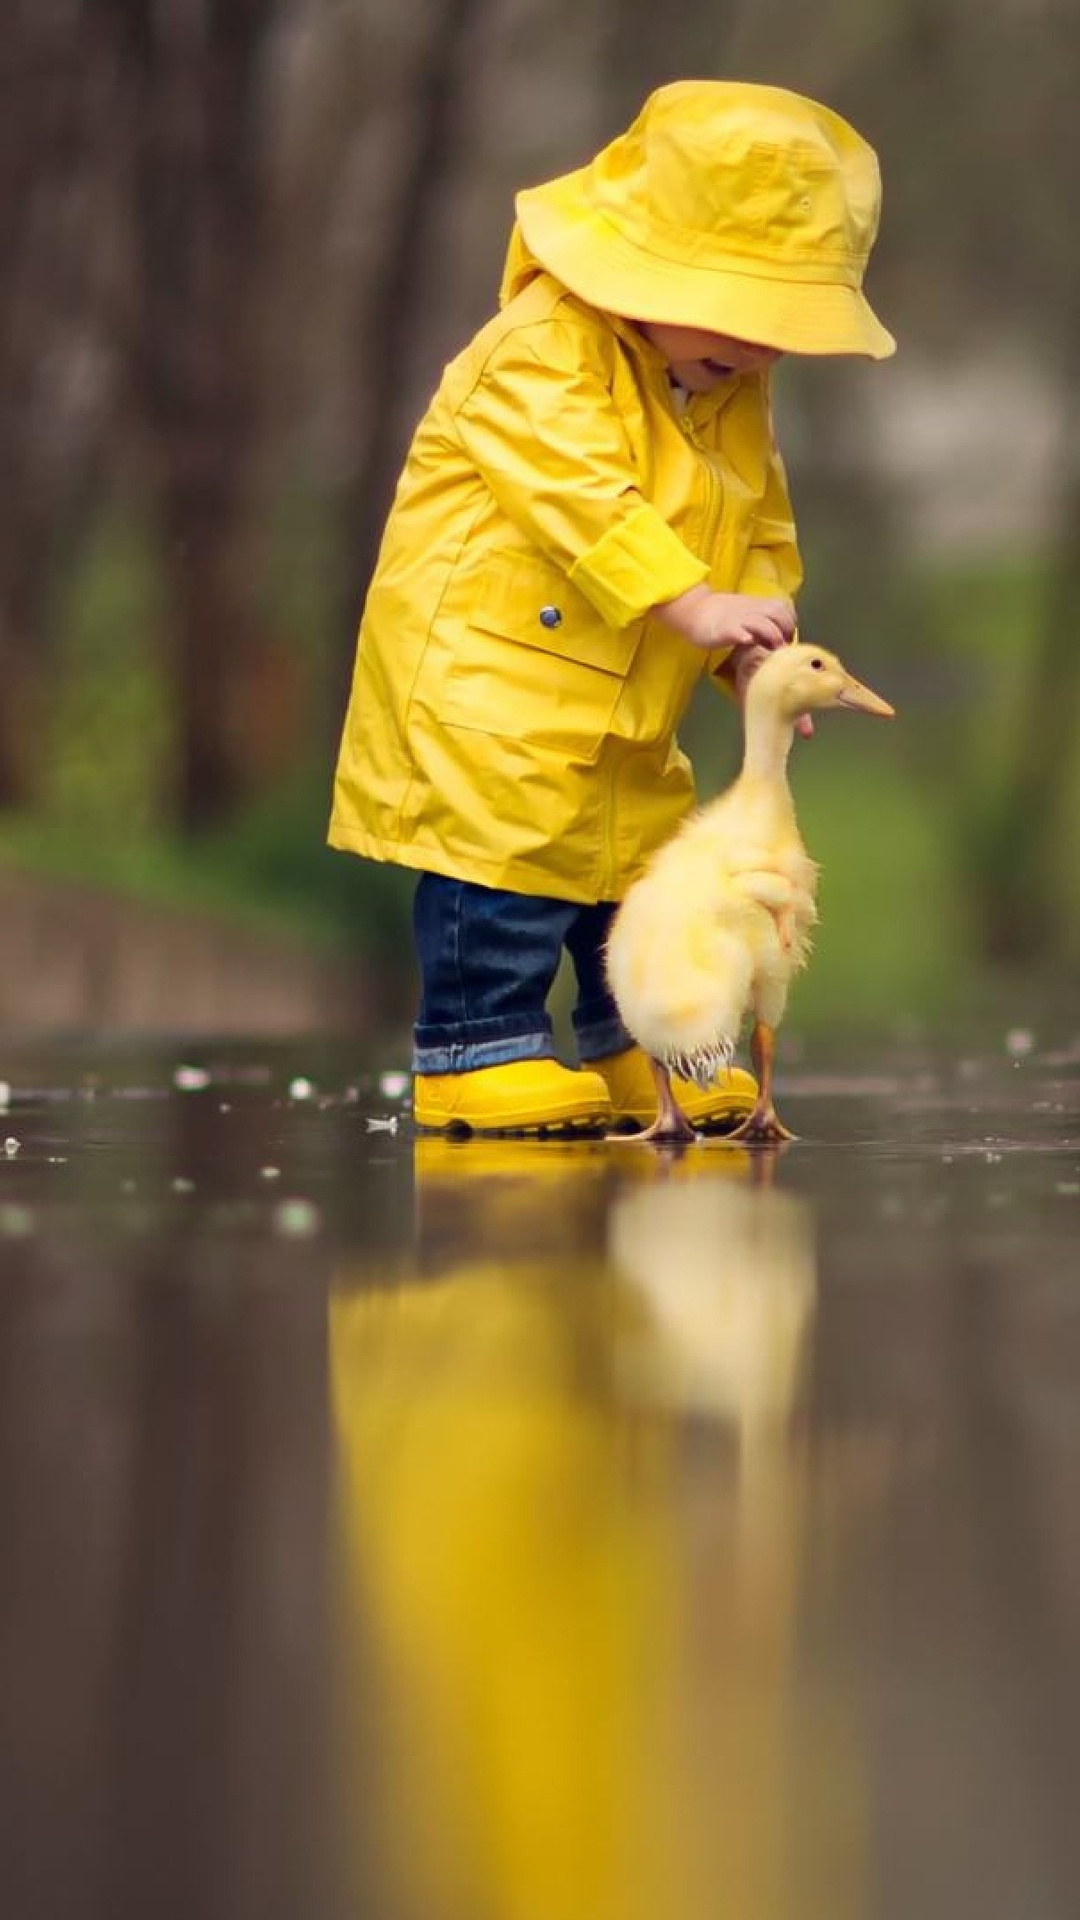 little-boy-child-playing-with-ducks-kv.jpg